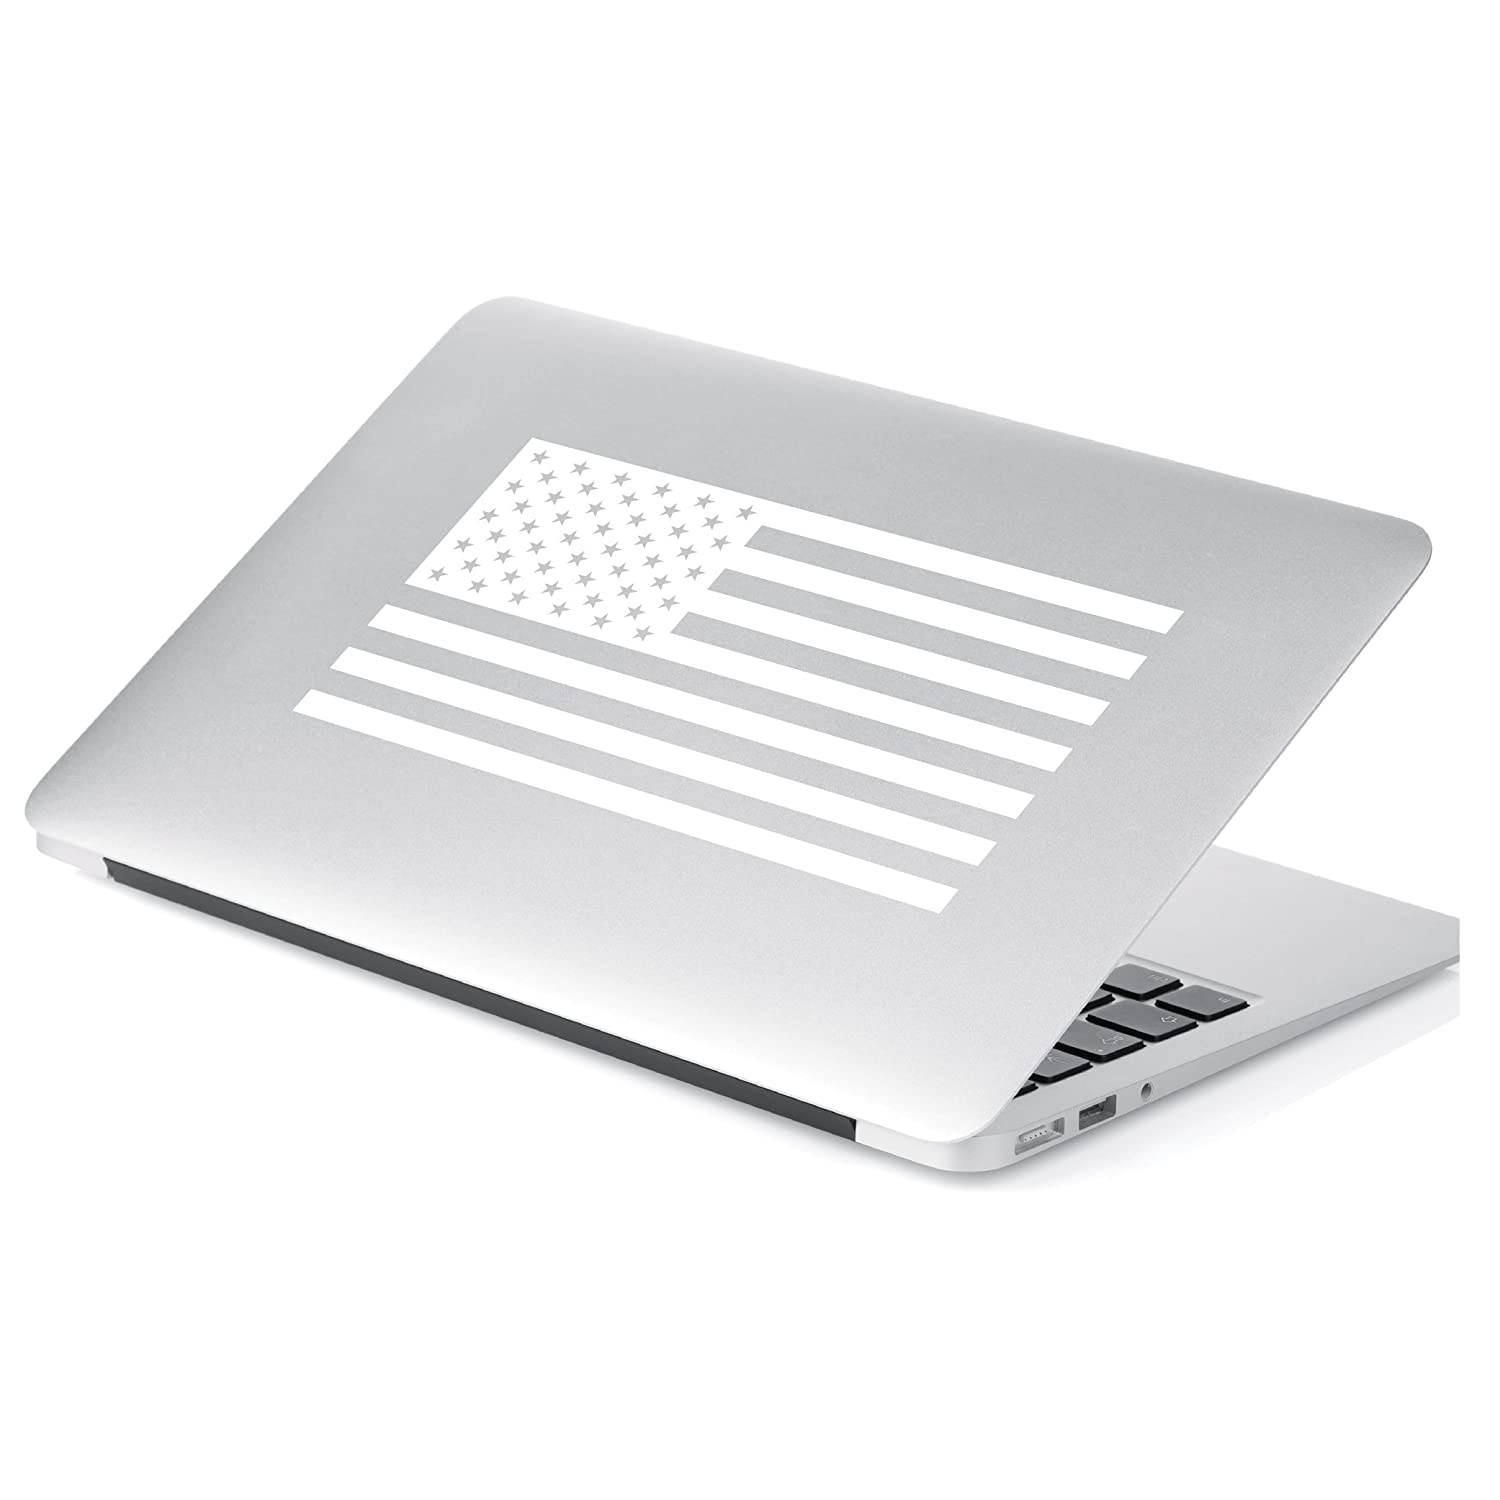 Laptop Black, 6 x 11.4 Motorcycle Yoonek Graphics Mirror and More # 559 6 x 11.4 Walls American Flag United States Decal Sticker for Car Window